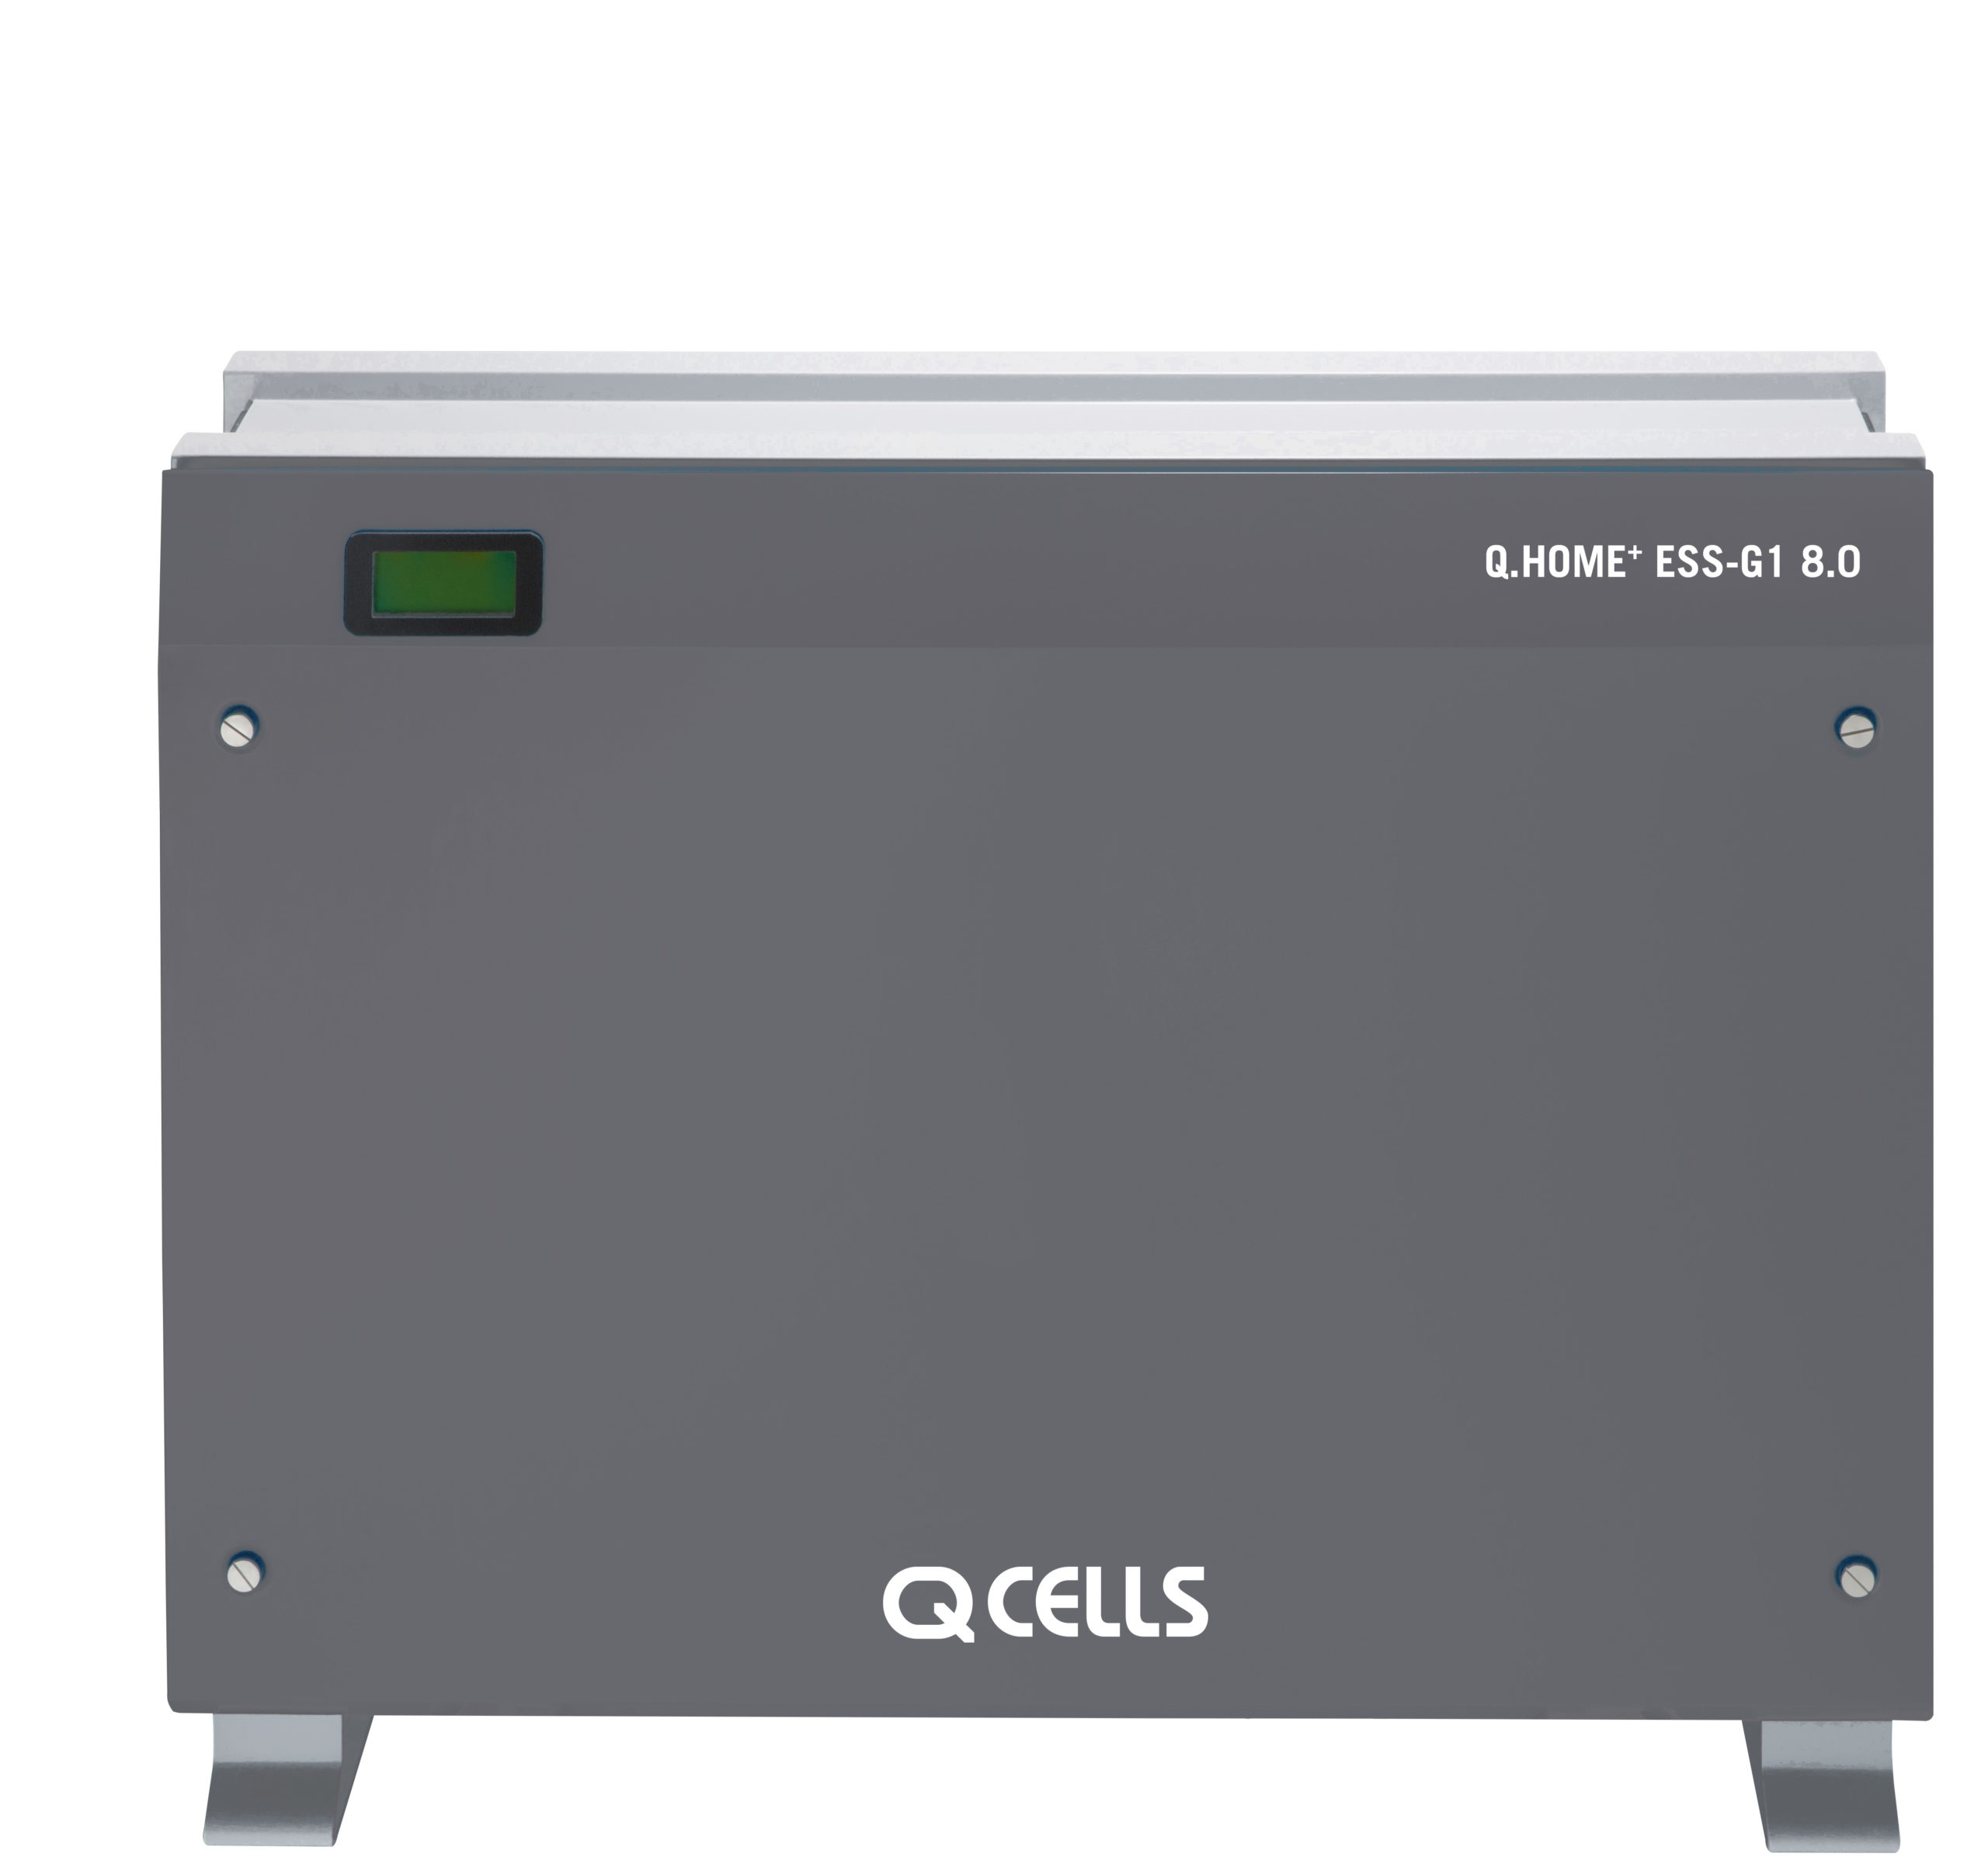 The Q.HOME+ ESS-G1 energy storage series is said to be available in three versions with capacities of 3.6 kWh, 6 kWh or 8 kWh. Image: Hanwha Q CELLS.